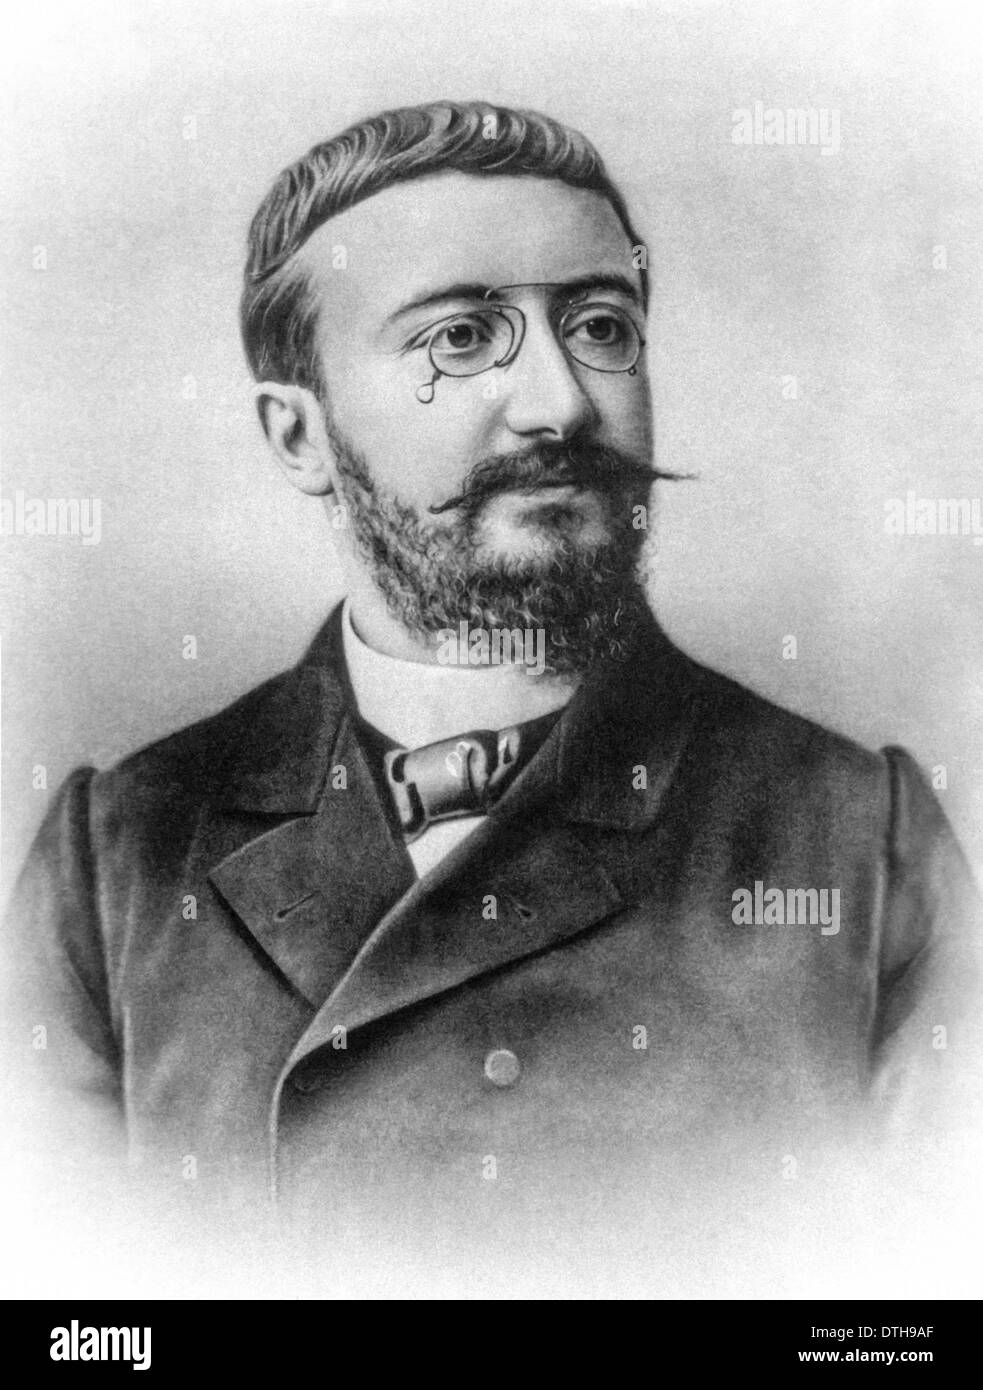 Alfred Binet (1857-1911) French psychologist who invented the first intelligence (IQ) test at Sorbonne (University of Paris). - Stock Image